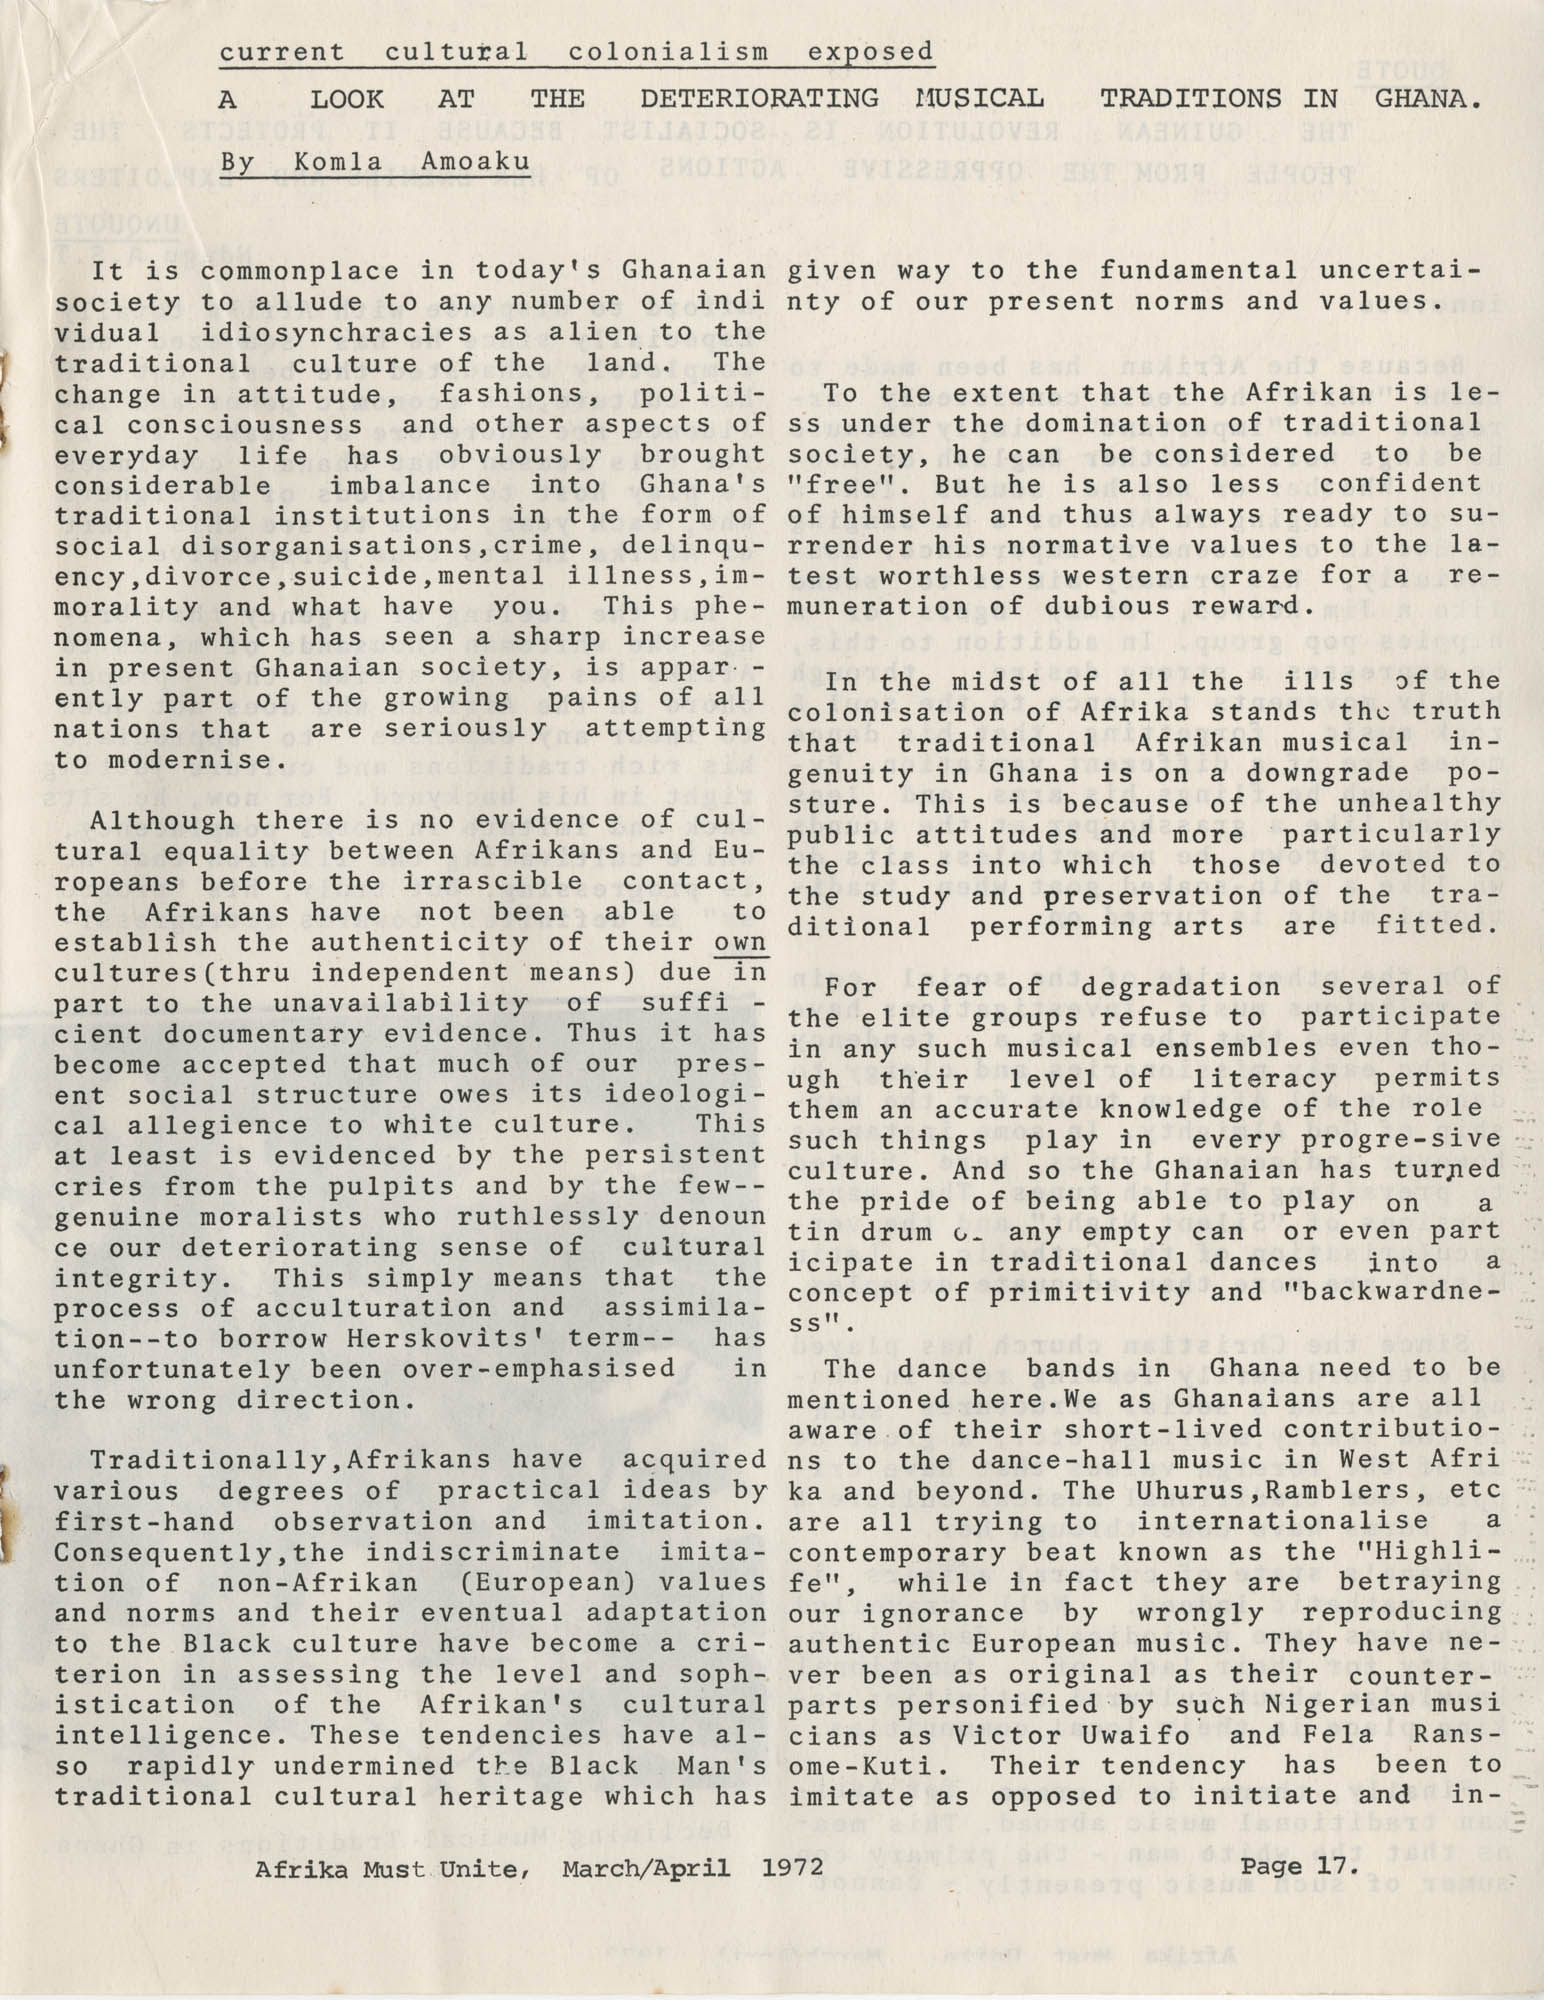 Afrika Must Unite, Vol. 1, No. 4, Page 17